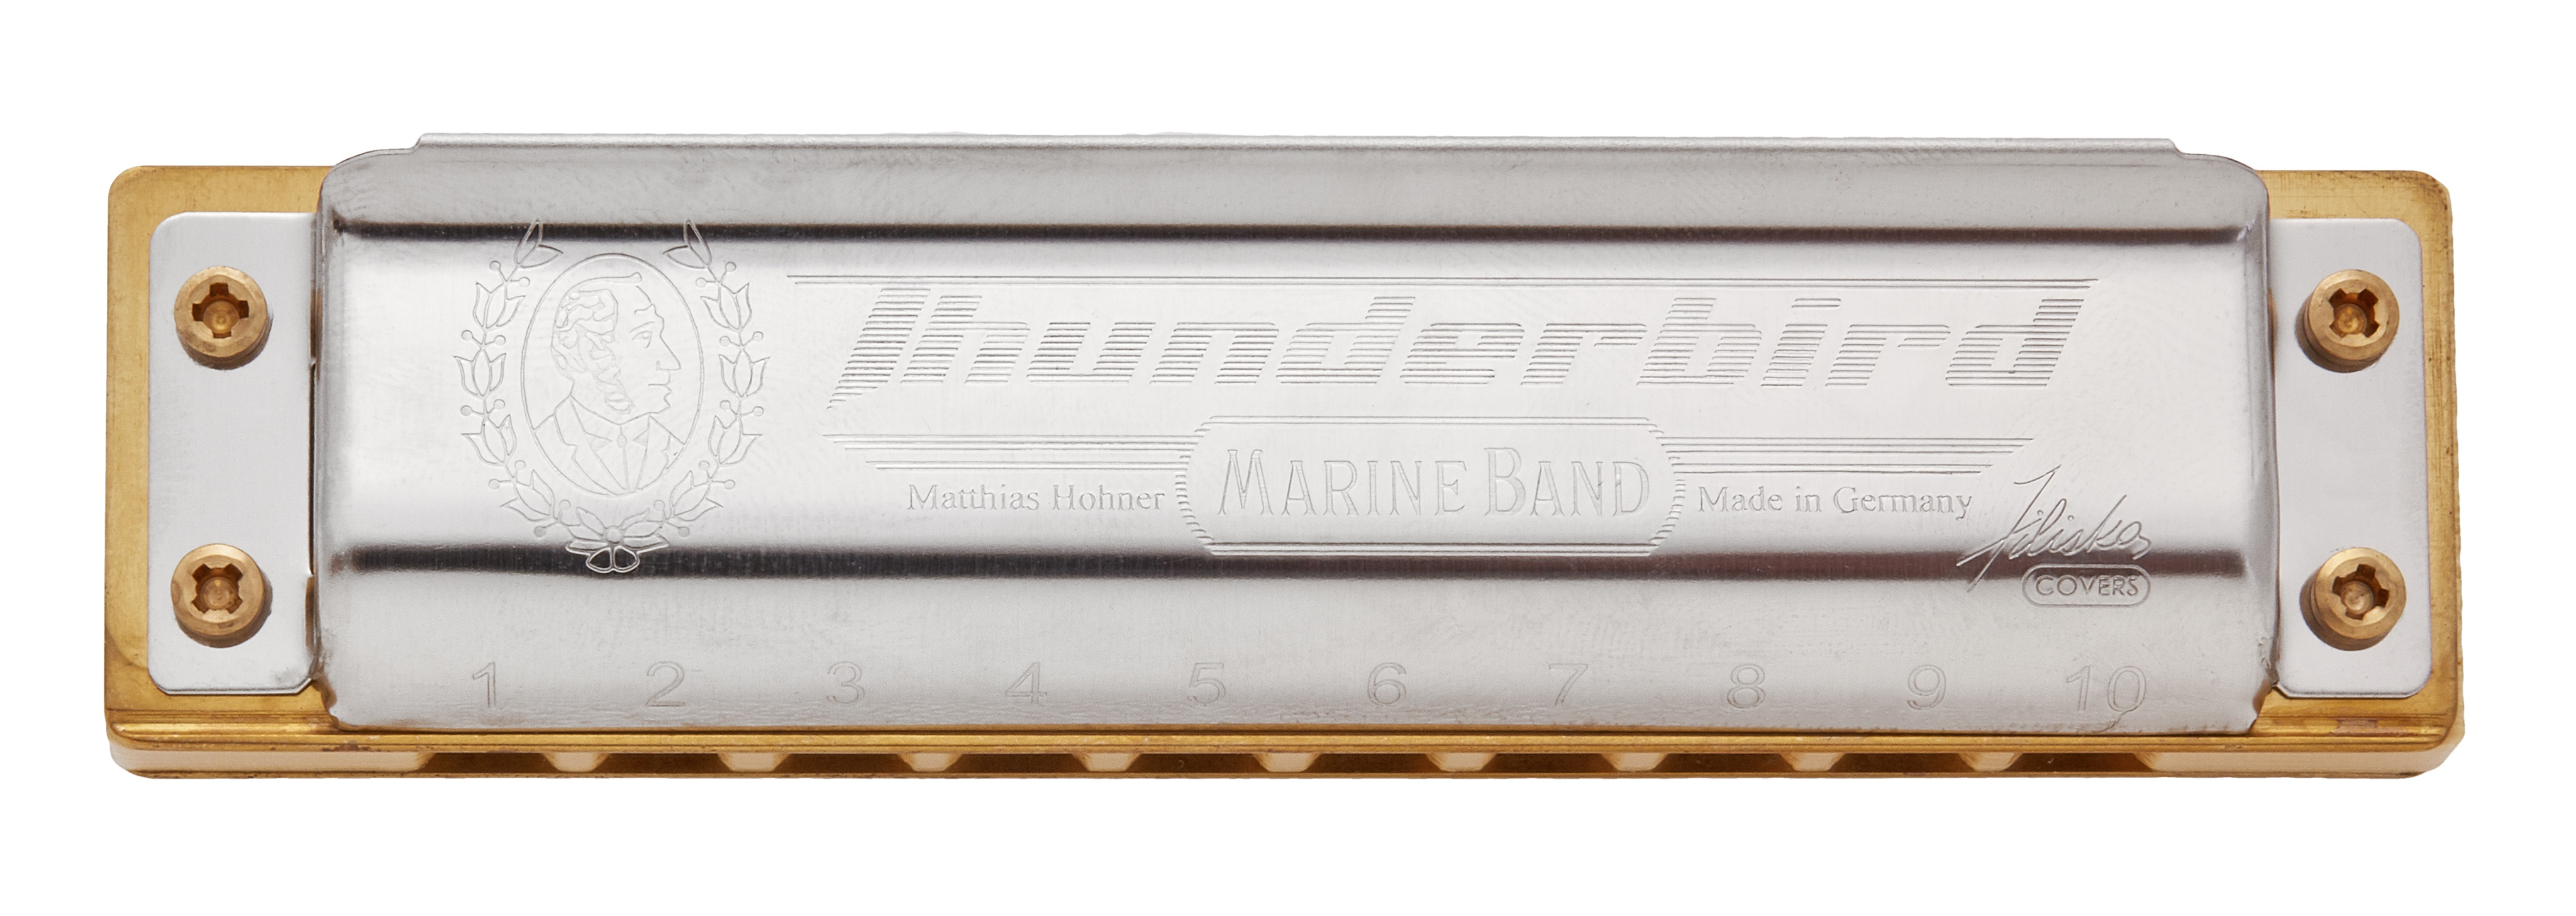 Hohner Marine Band Thunderbird A-major, low octave